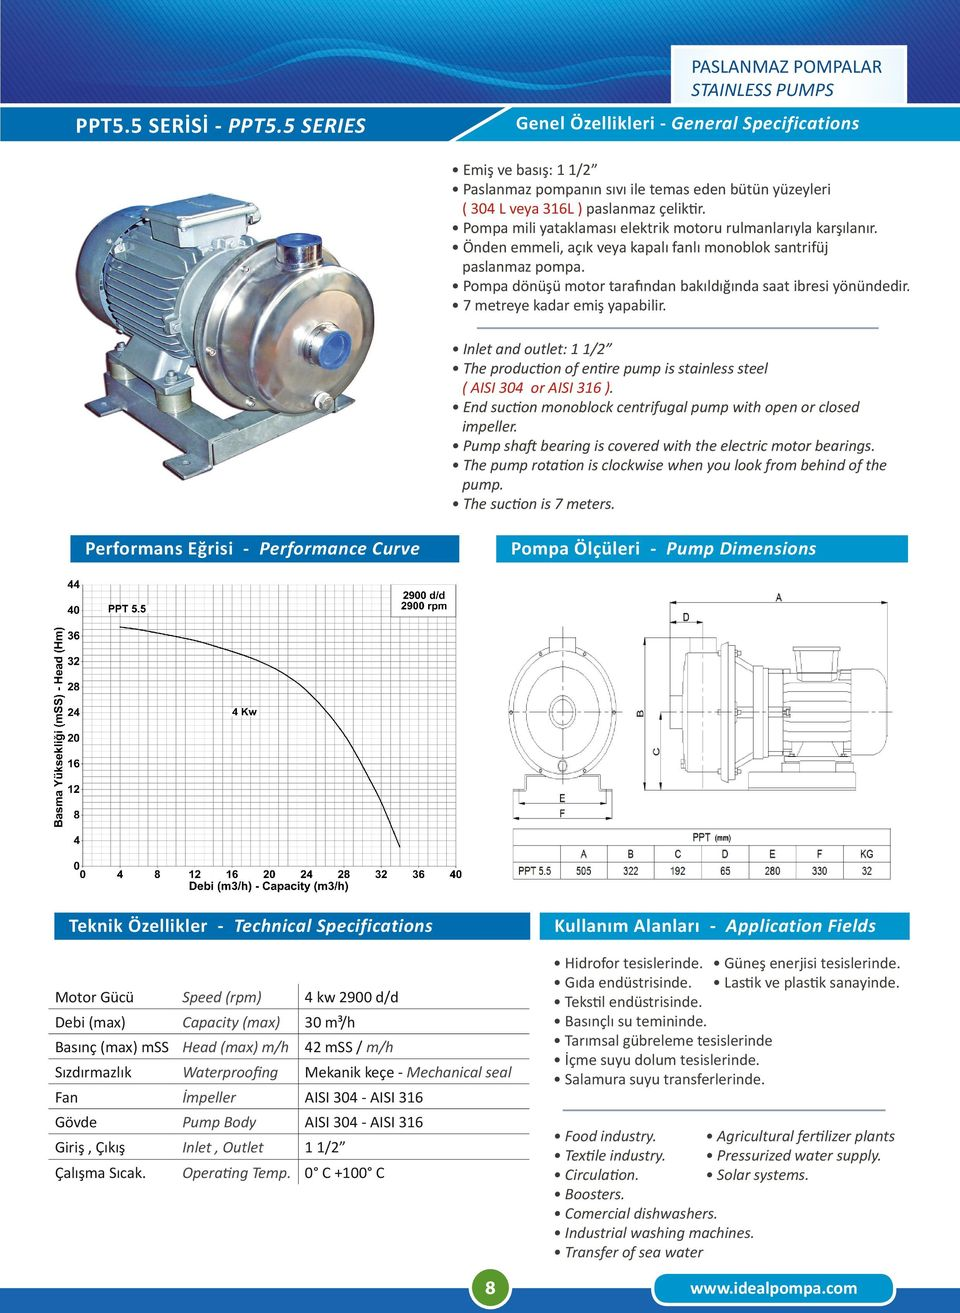 End suction monoblock centrifugal pump with open or closed impeller. Pump shaft bearing is covered with the electric motor bearings.